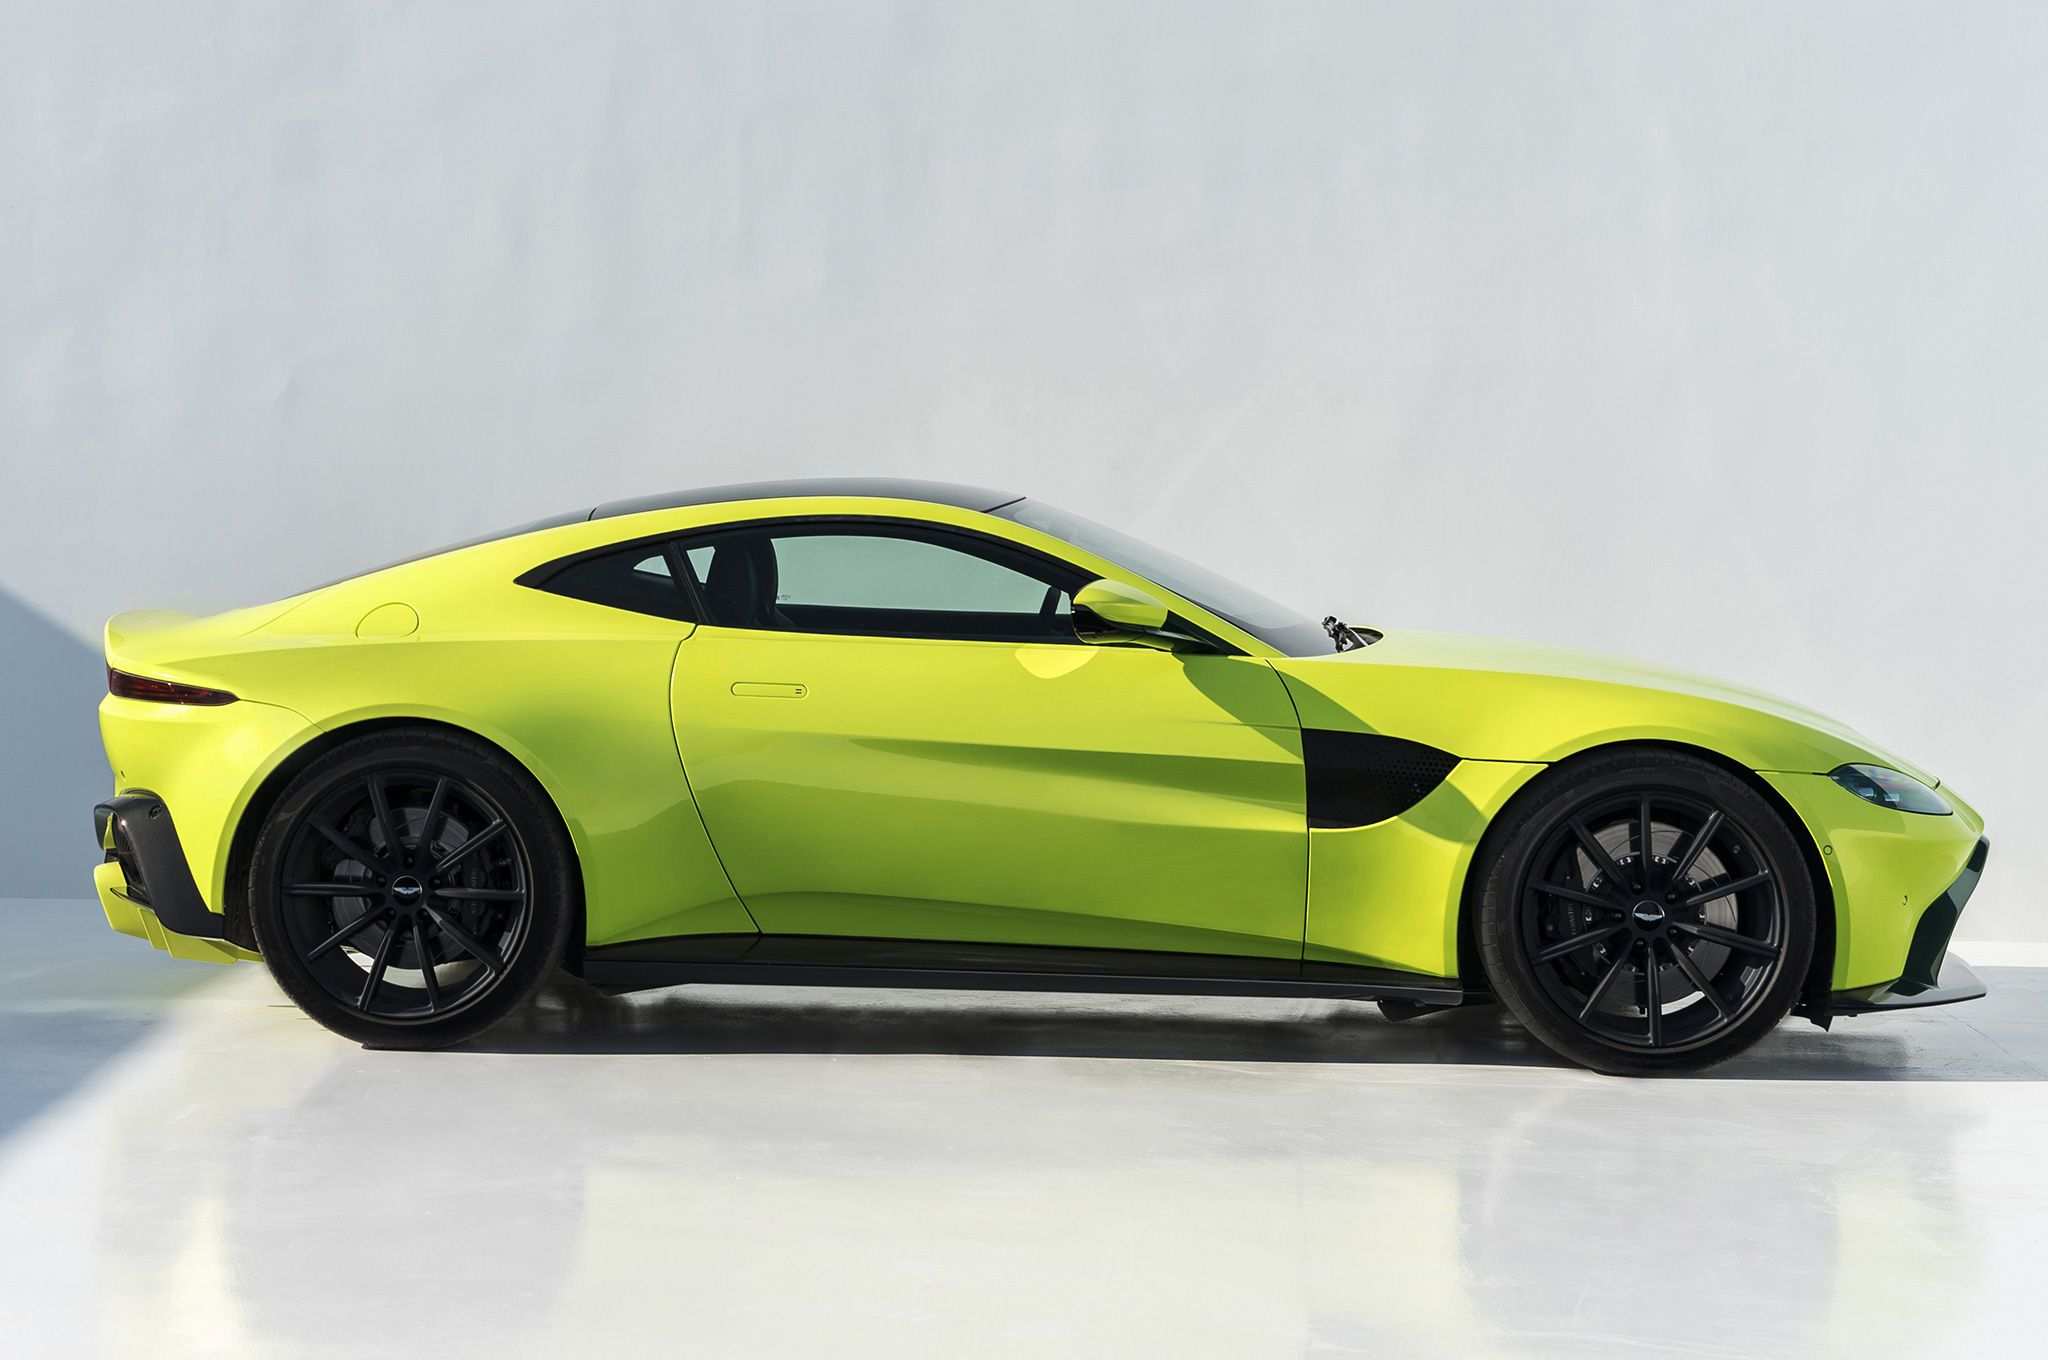 2019-Aston-Martin-Vantage-side-view-against-wall.  I